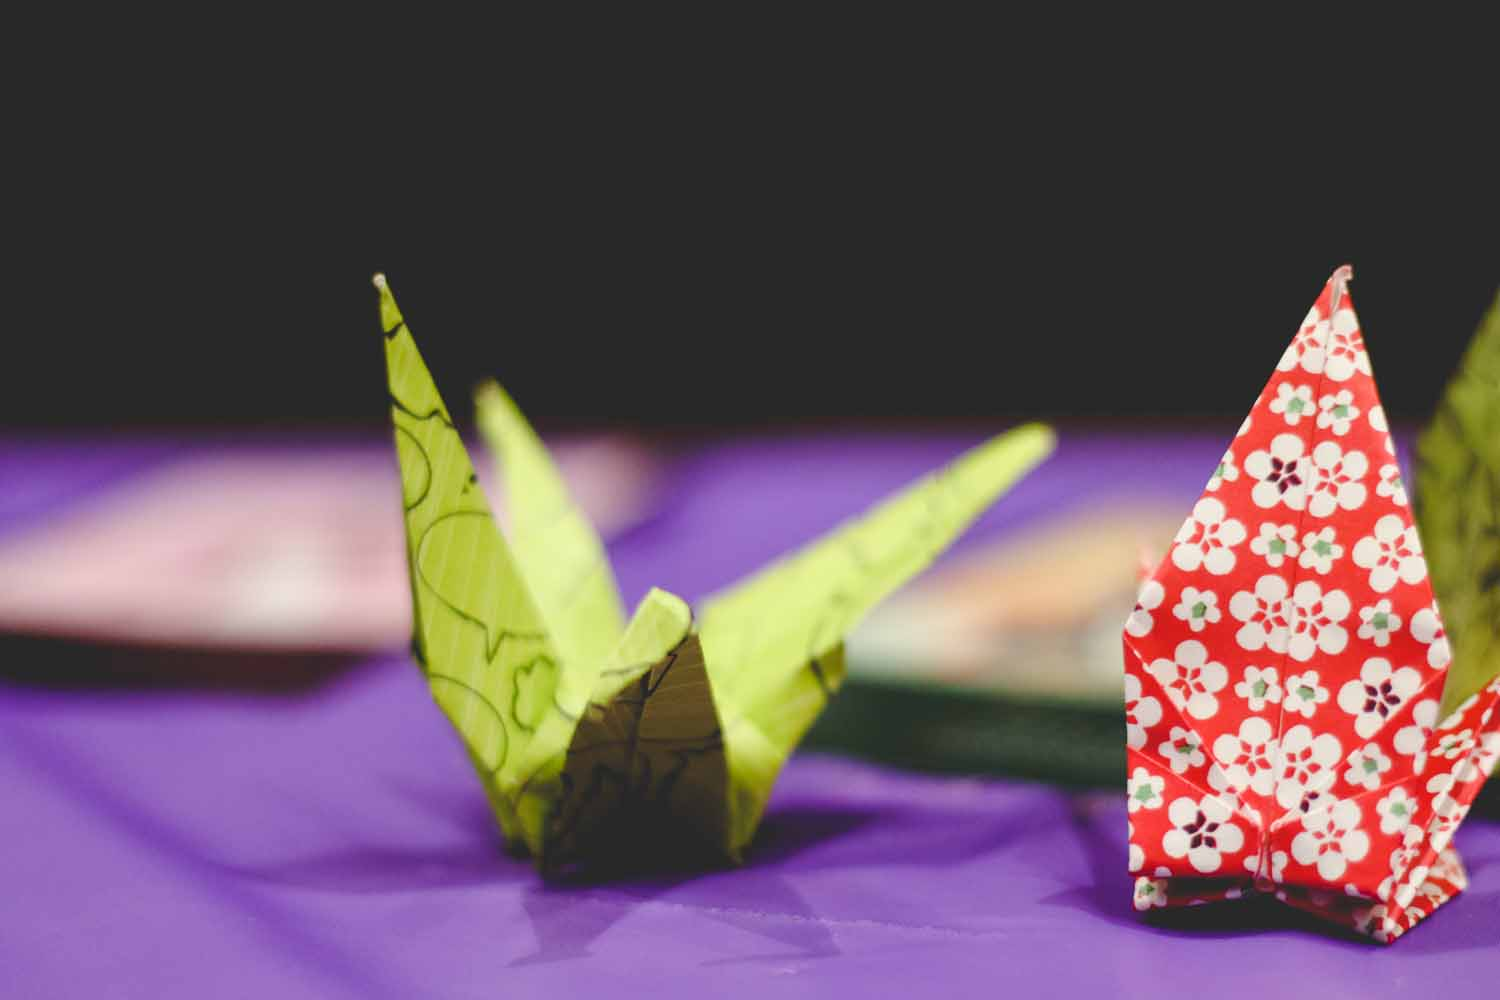 Japanese origami paper crane were on display. Photo by Hanna Yowell.